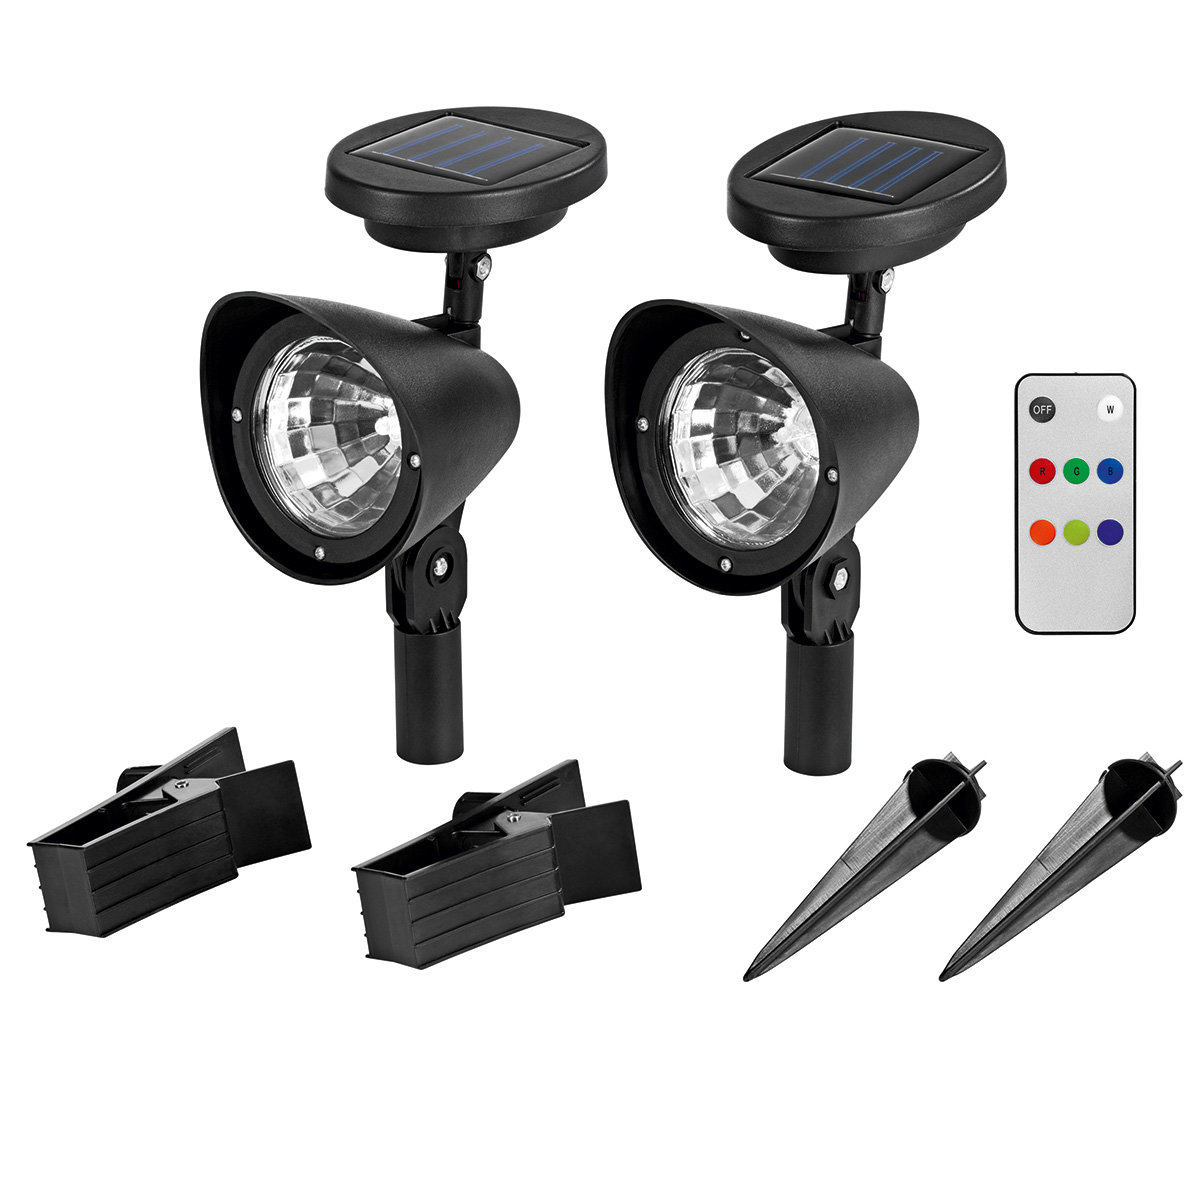 Solar-Strahler LED Multi-Color 2er-Set | #5